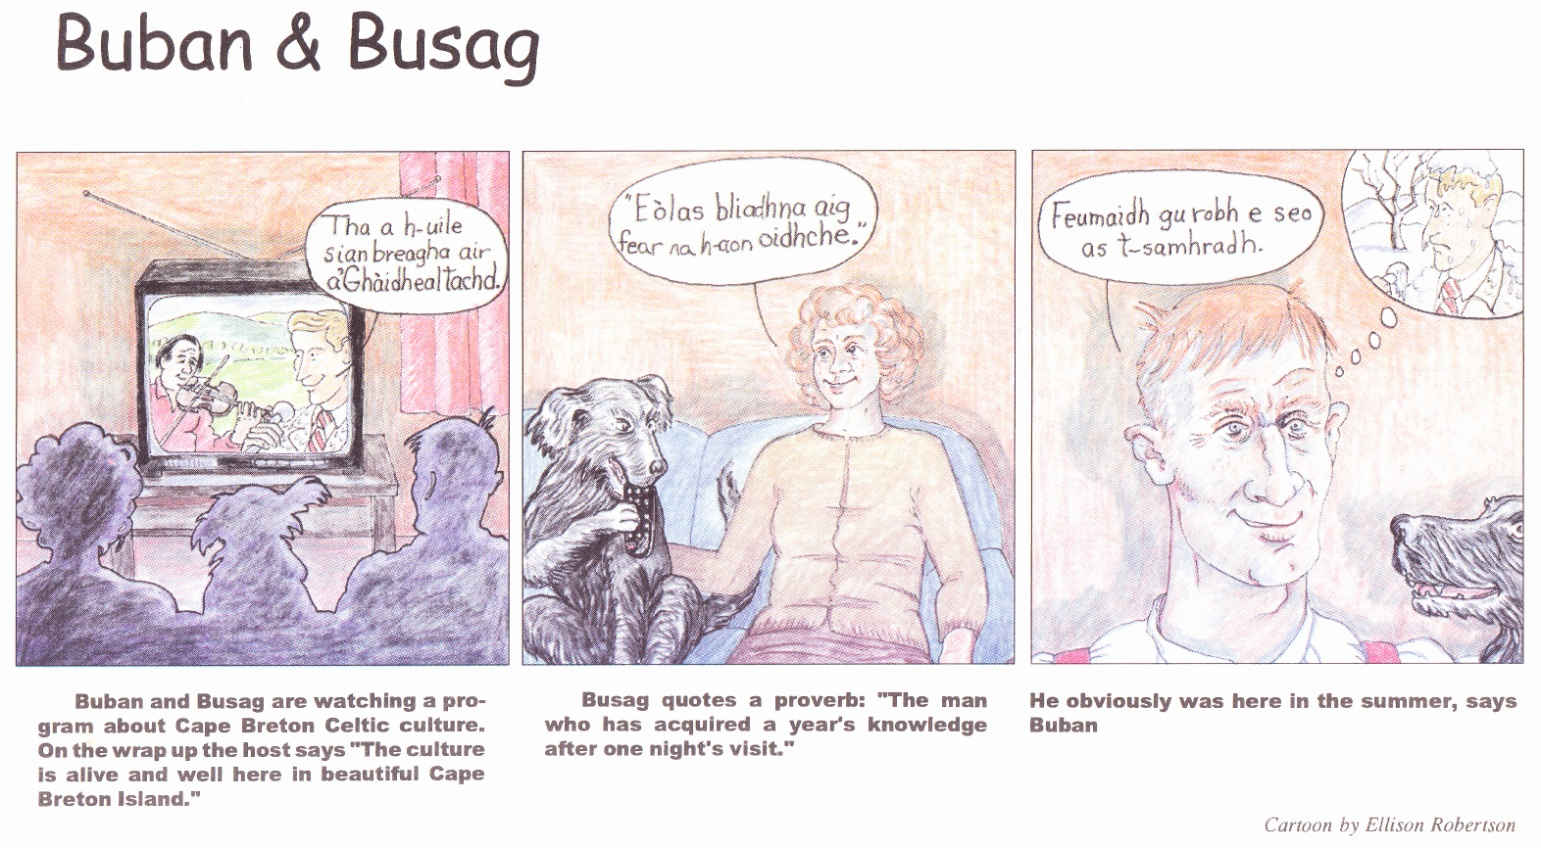 C:\Users\Robert\Documents\CARTOONING ILLUSTRATION ANIMATION\IMAGE CARTOON\IMAGE CARTOON B\BUBAN'S  BUSAG, AmBraighe, Spring 1998, 24.jpg